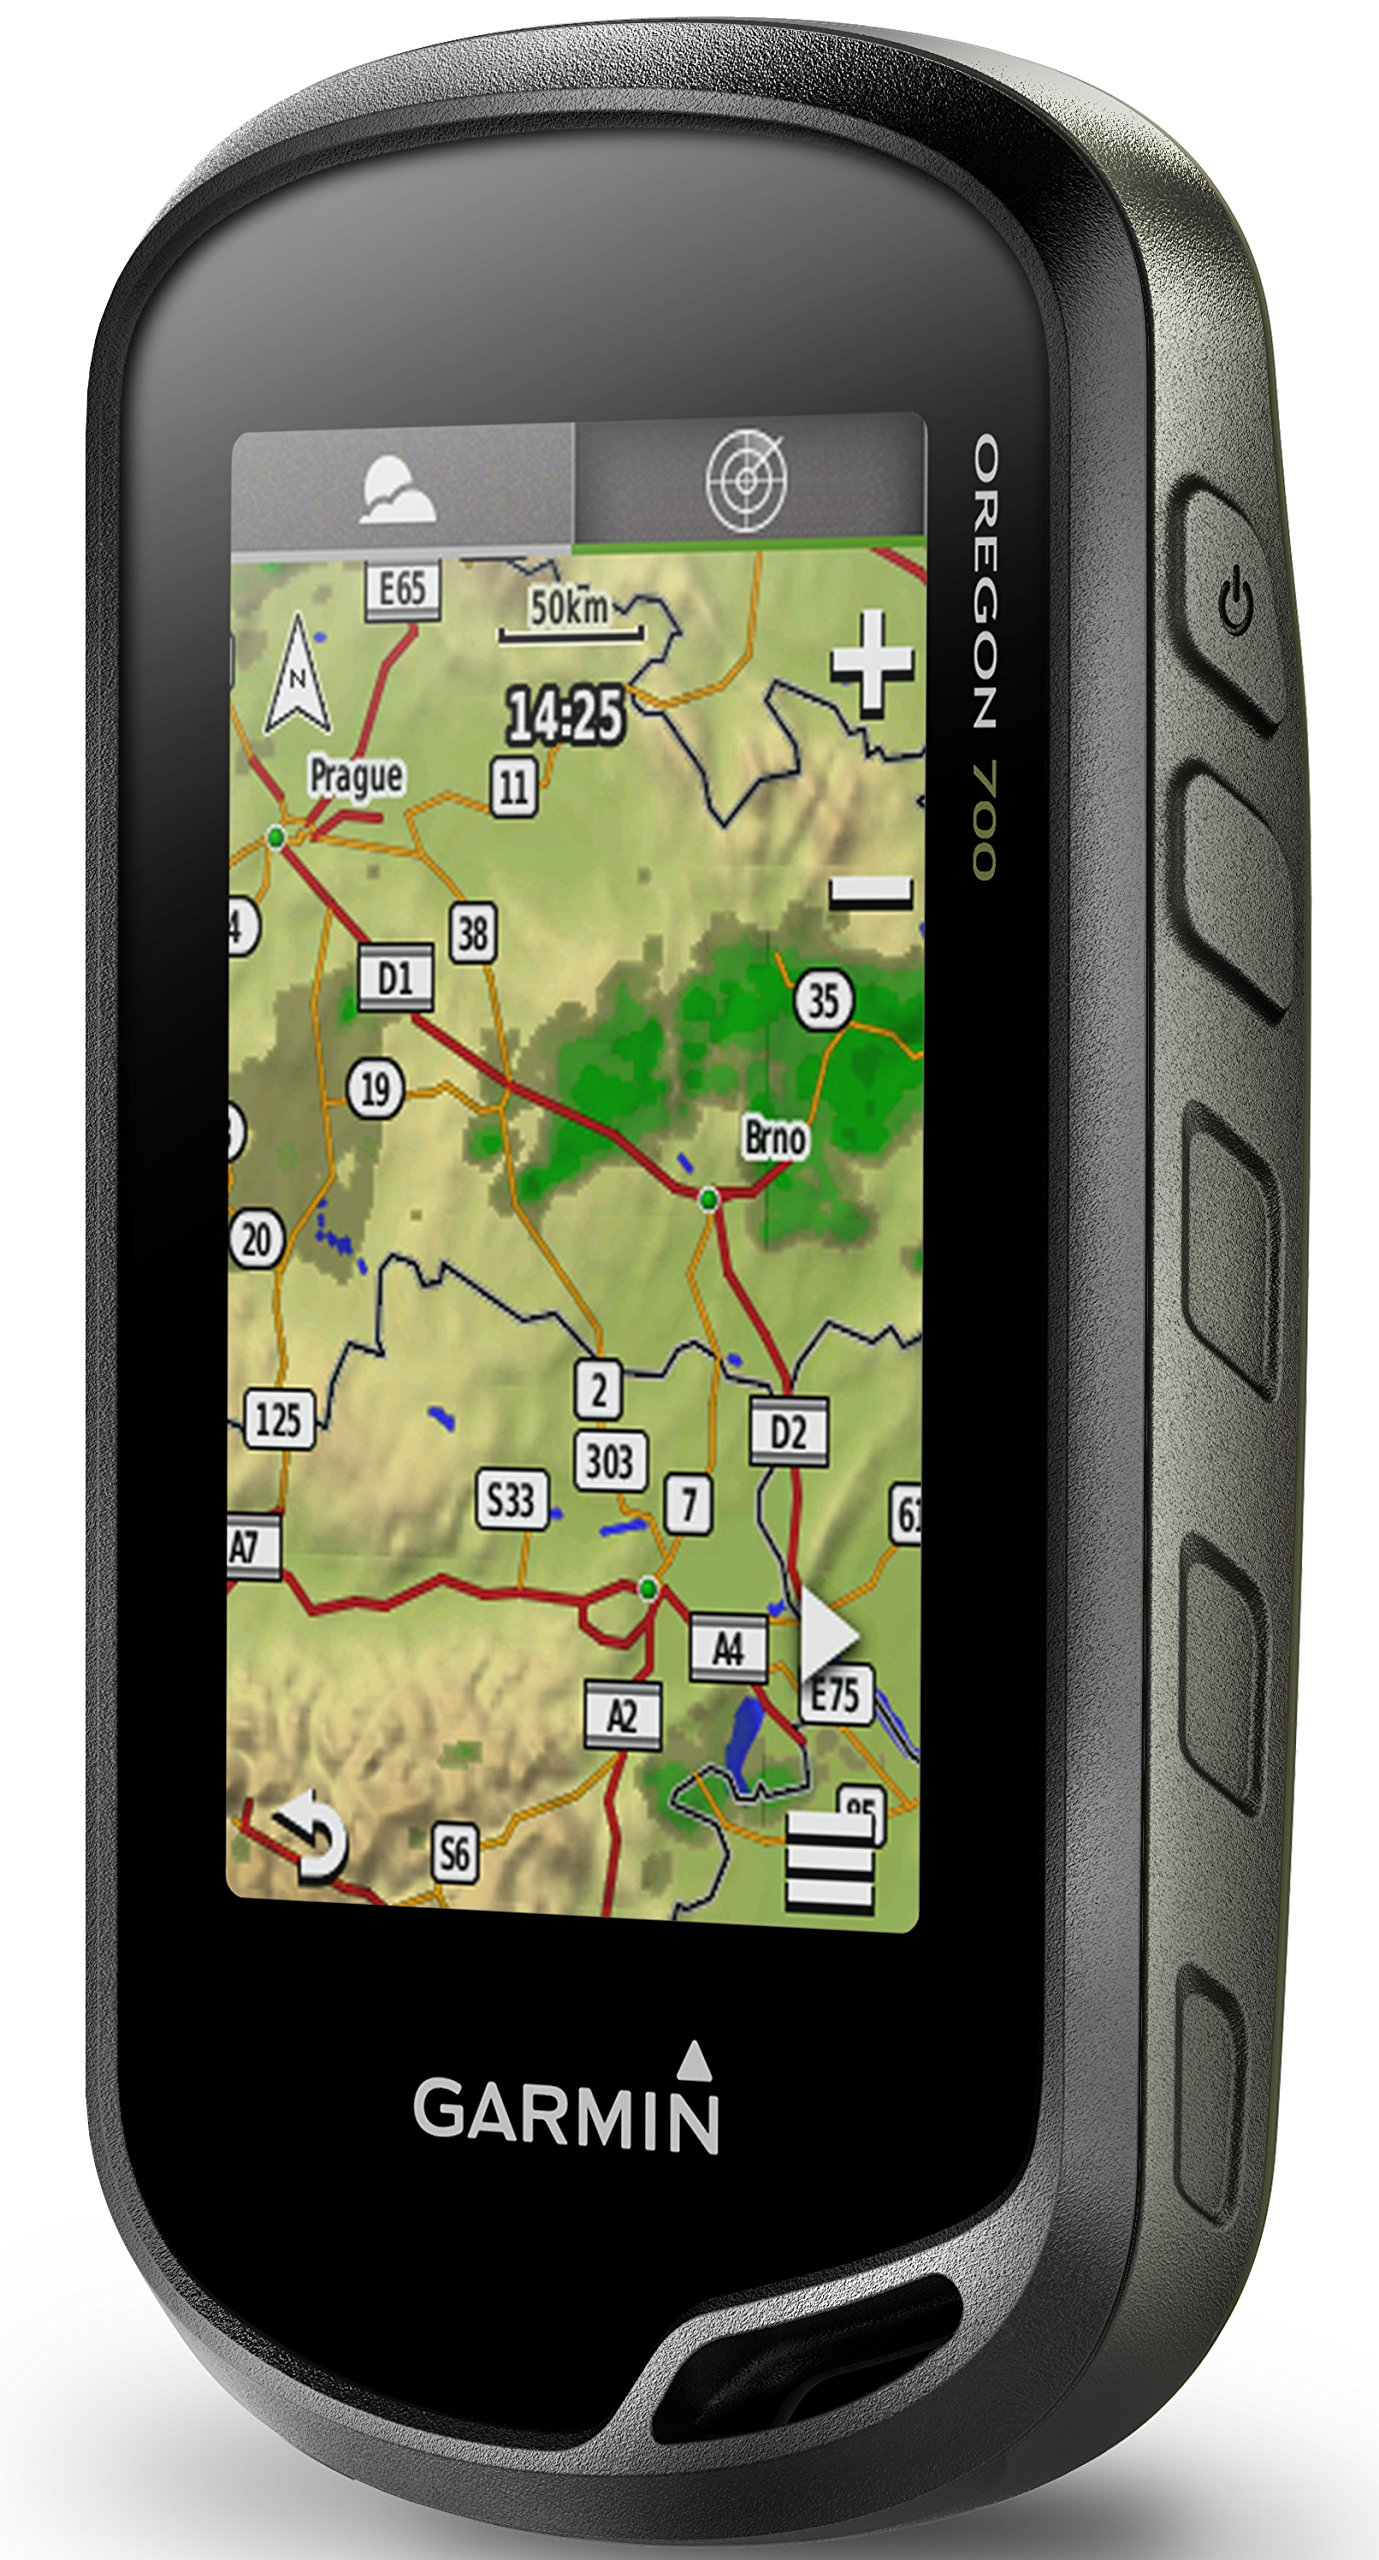 Garmin Oregon 700 Handheld GPS Navigation System 3